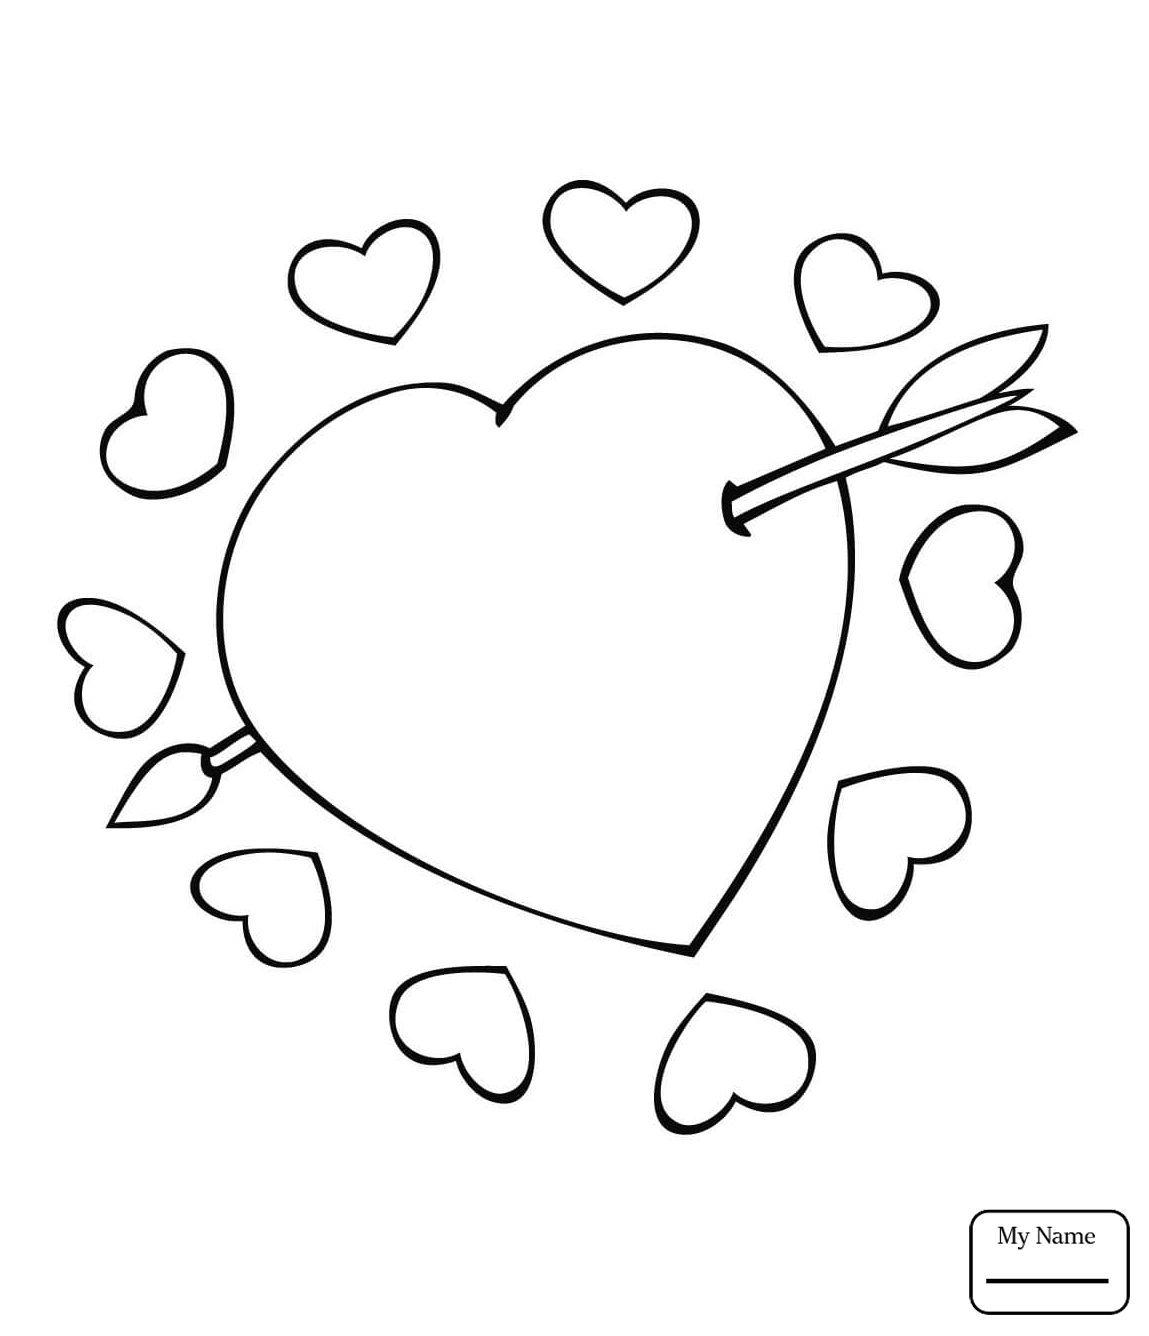 1149x1336 Coloring Pages For Kids Big Heart In The Clouds Arts Culture